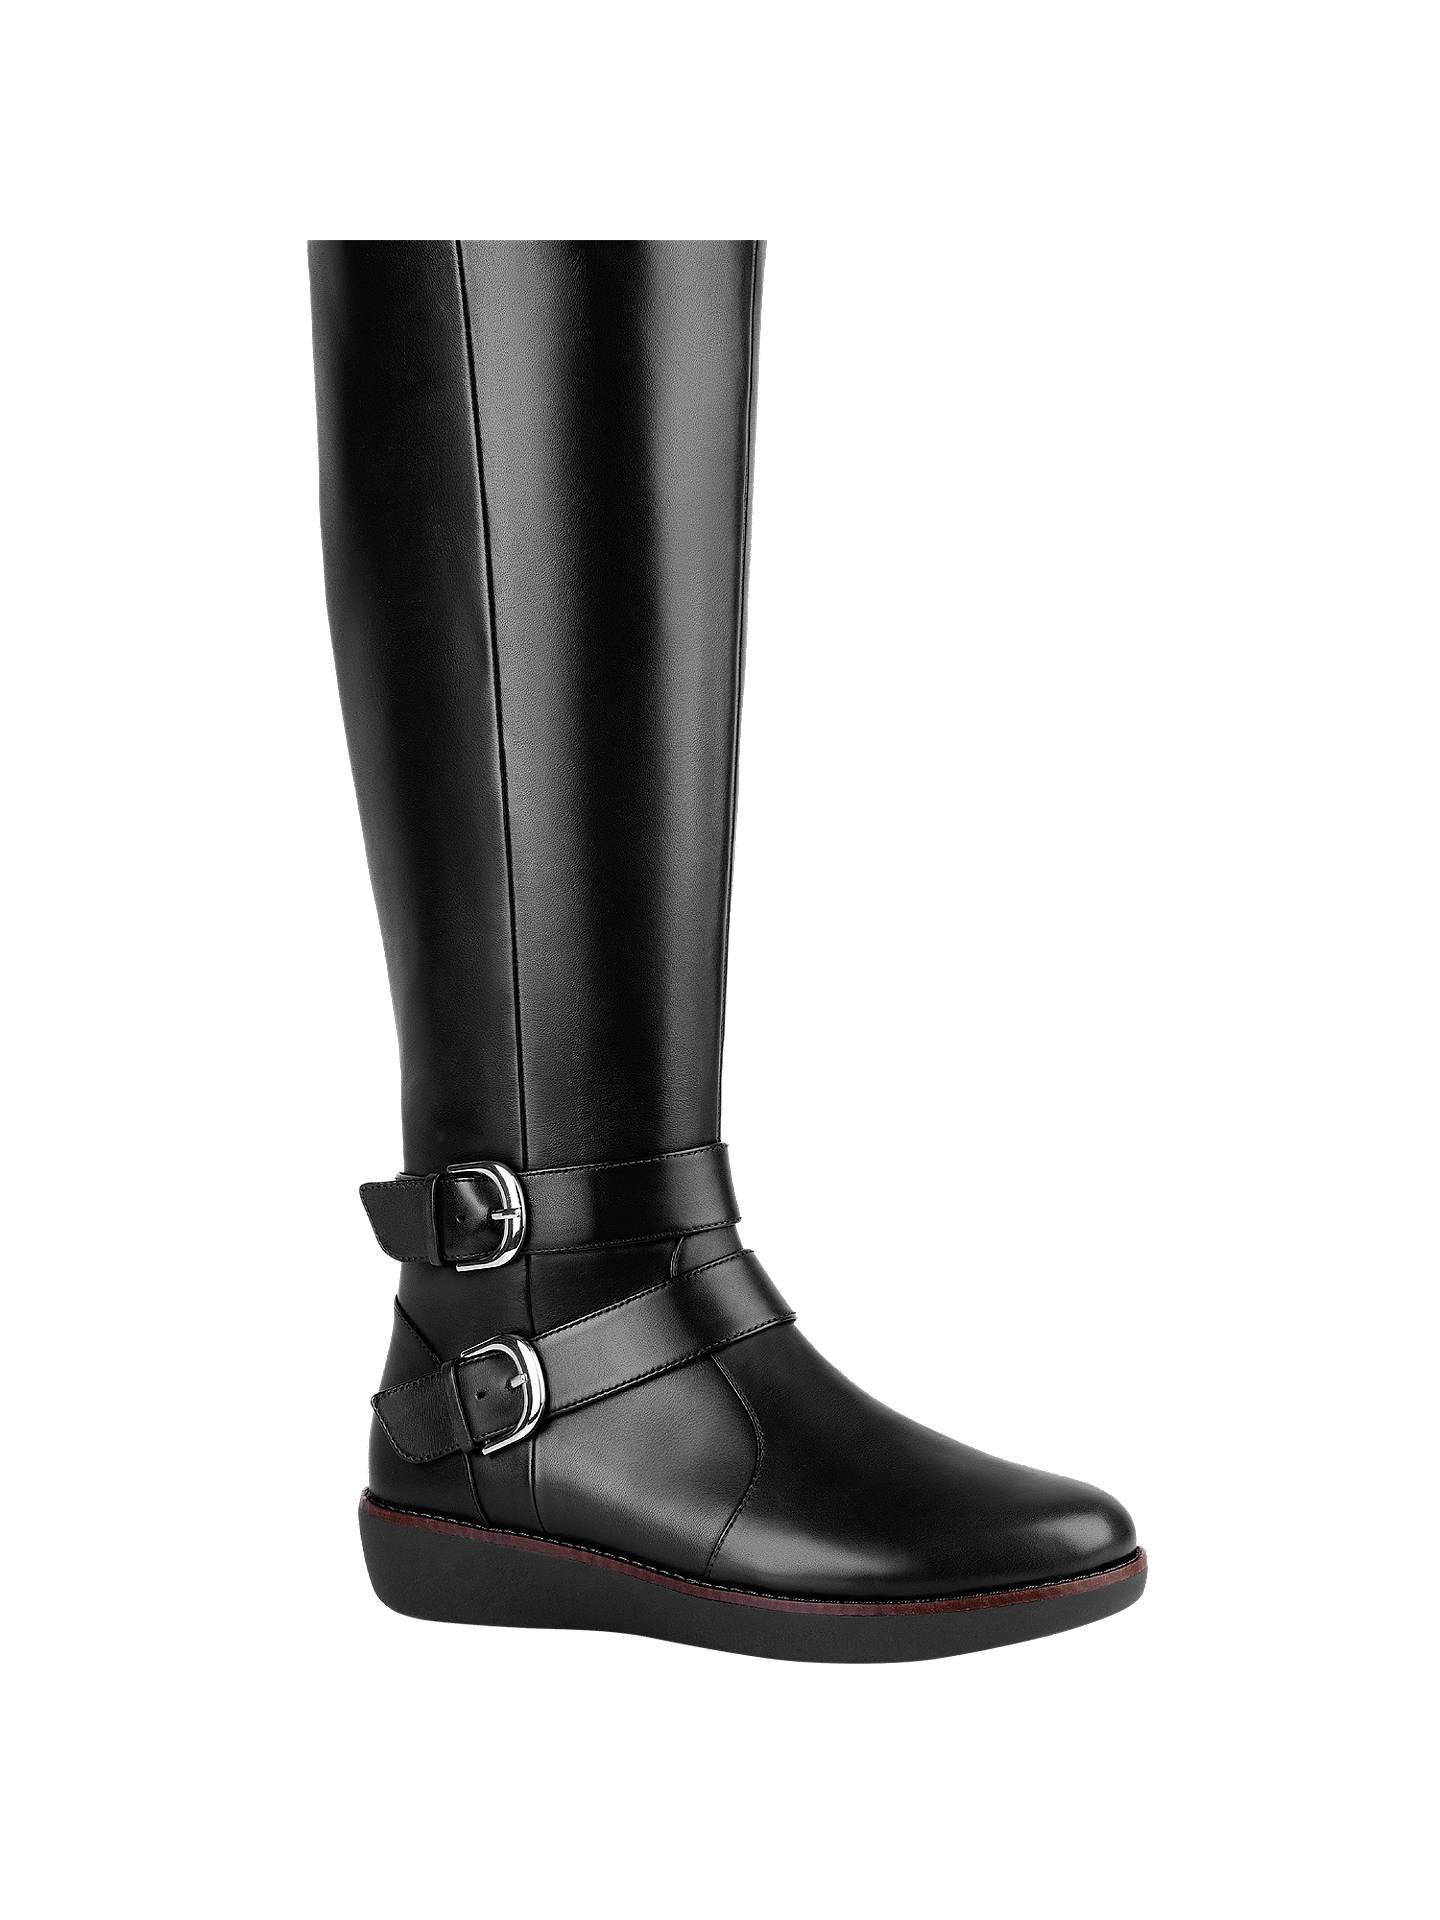 6d43811e440 Fitflop Noemi Double Buckle Long Boots at John Lewis   Partners